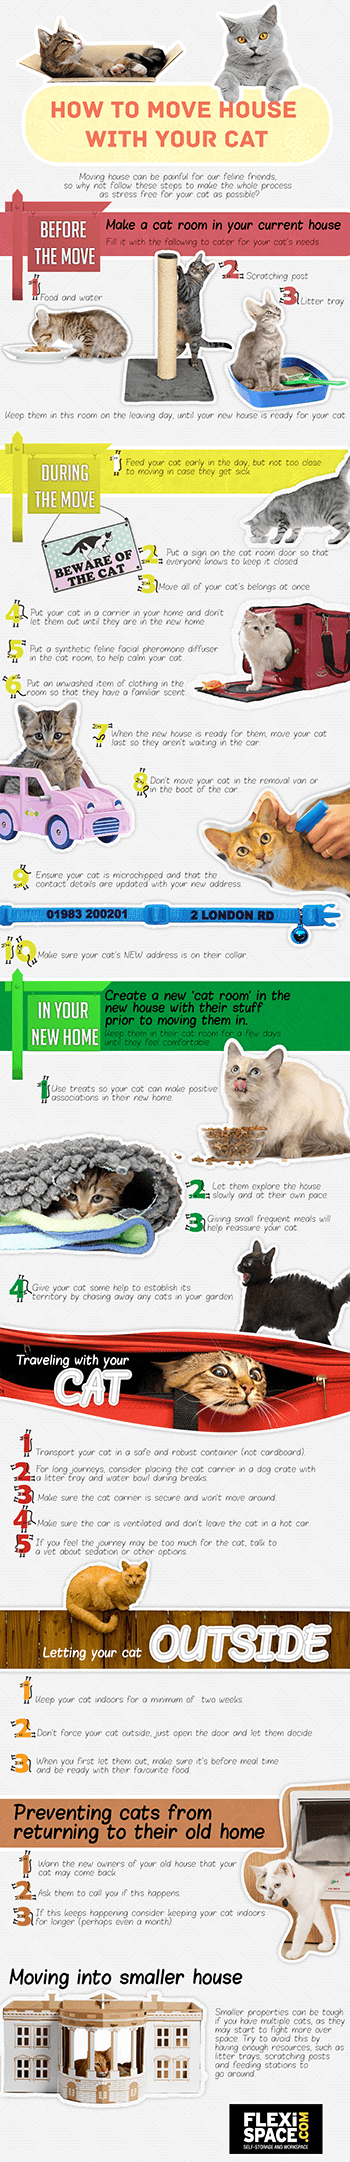 moving house with your cat infographic